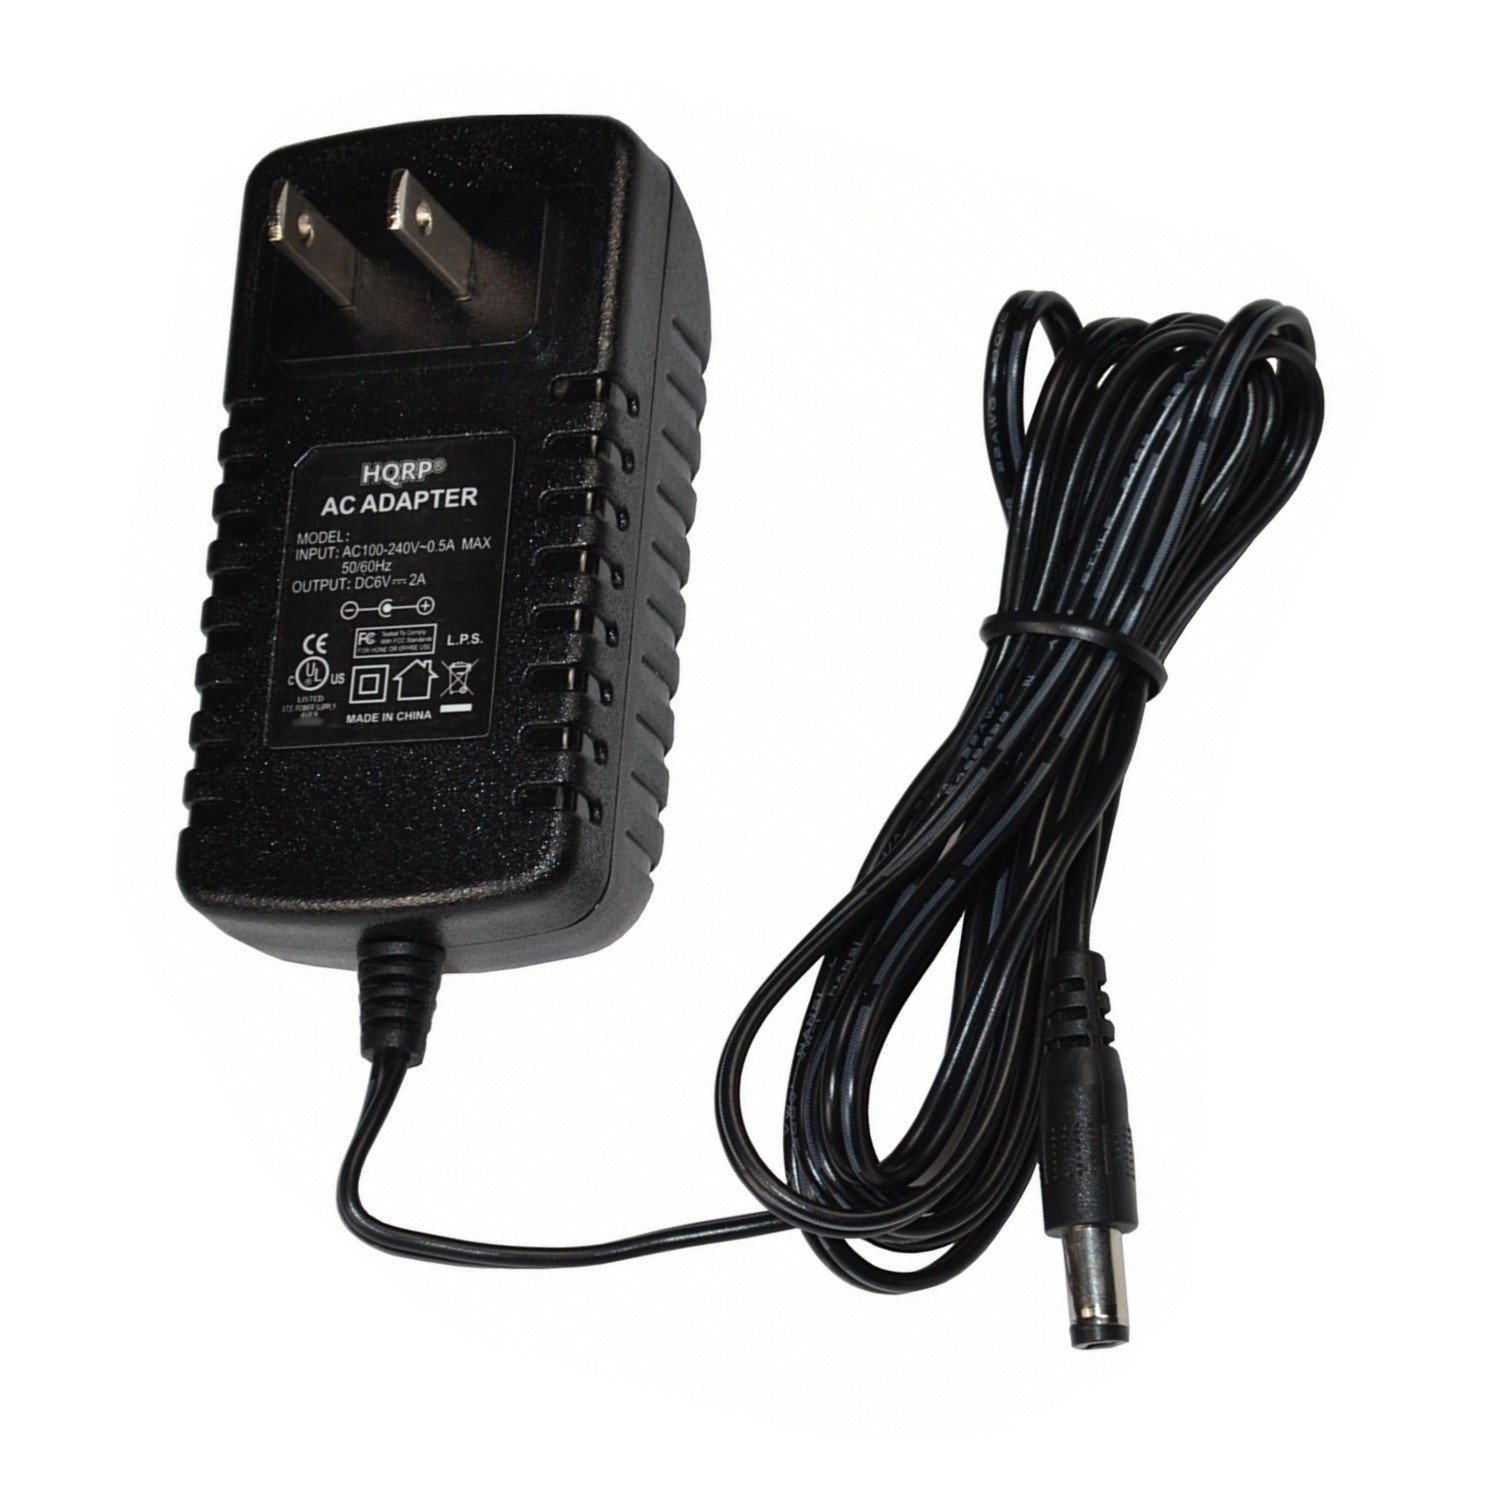 HQRP AC Power Adapter for A&D LifeSource UA-631 / UA-767 / UA-767T / UA-767TL / UA-767PV / UA-767PVL / UA-767PVS / UA-789AC Blood Pressure Monitor plus HQRP Euro Plug Adapter